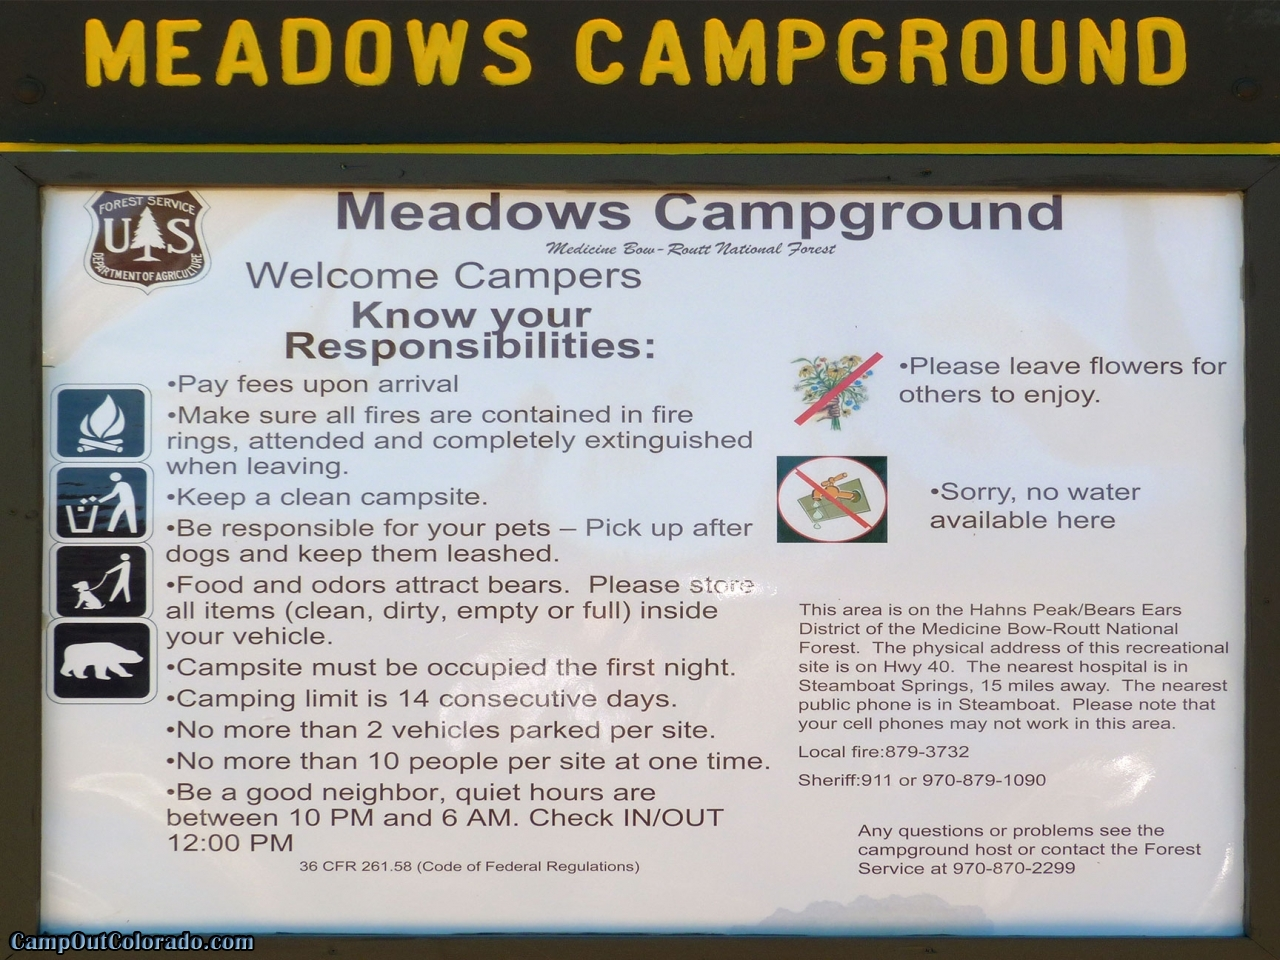 campoutcolorado-meadows-campground-rabbit-ears-kiosk